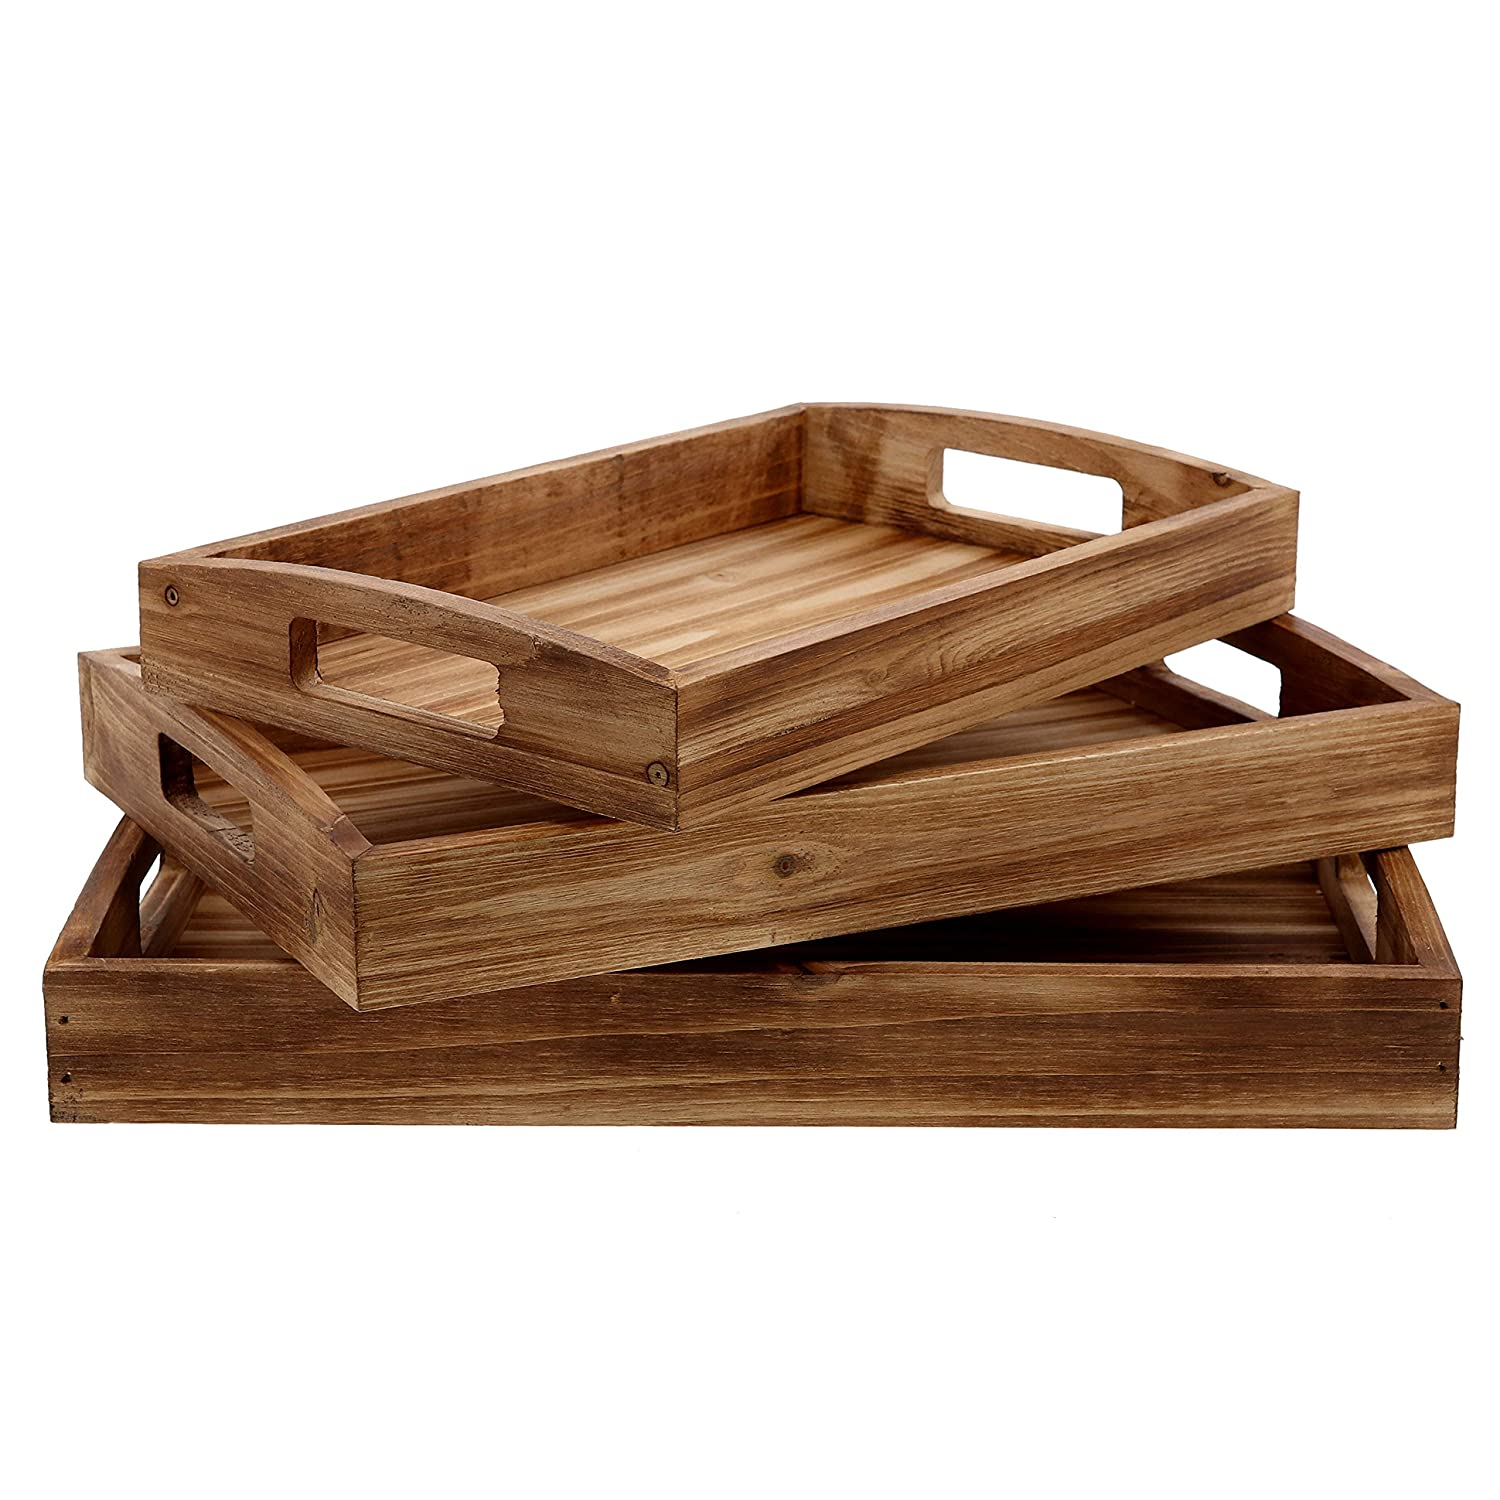 Barnyard Designs Torched Wood Nesting Serving Trays Handles Rustic